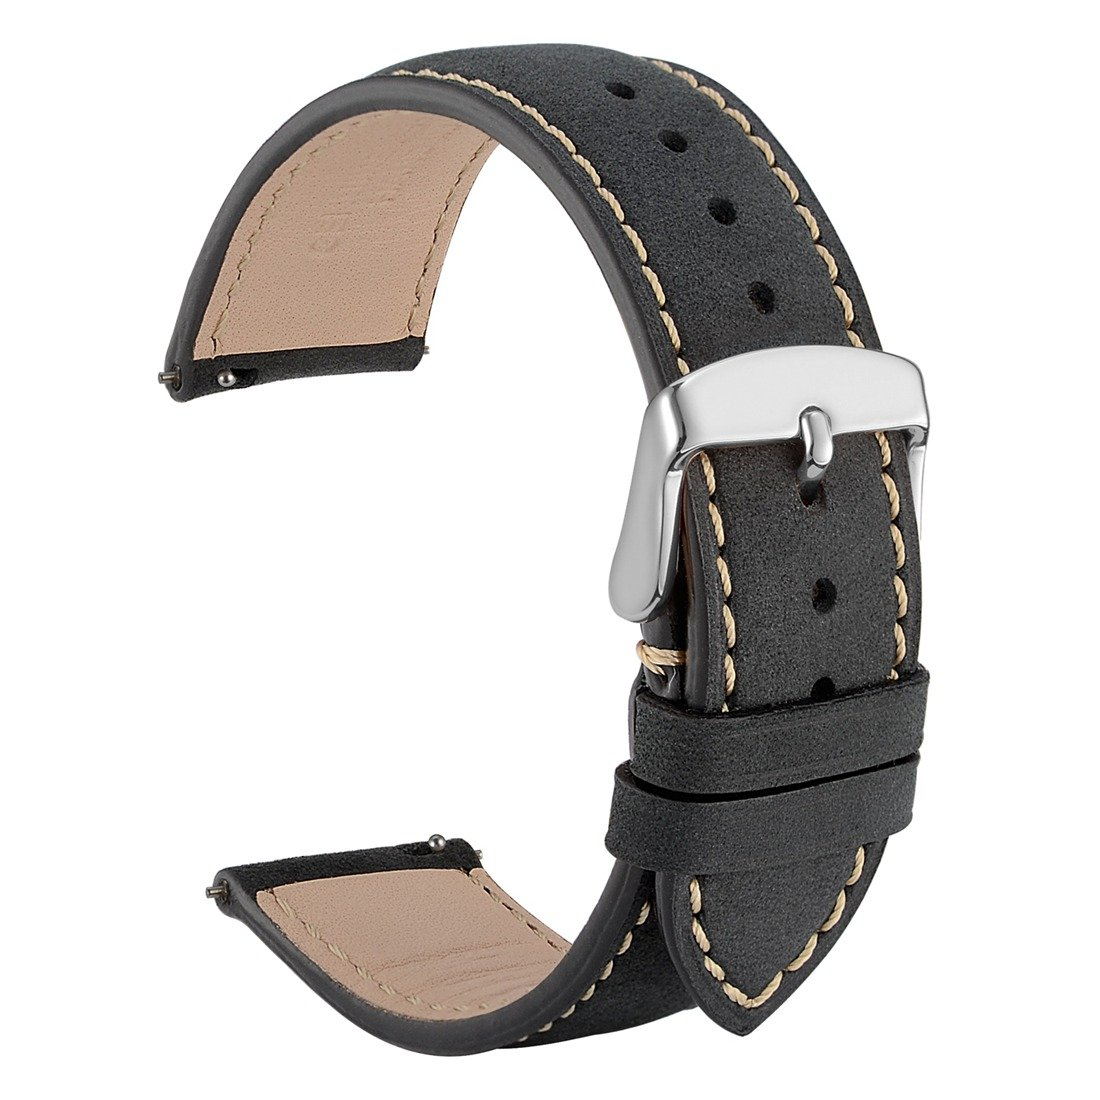 WOCCI 18mm Suede Vintage Leather Watch Band with Pins Buckle, Quick Release Strap (Black with Contrasting Seam)